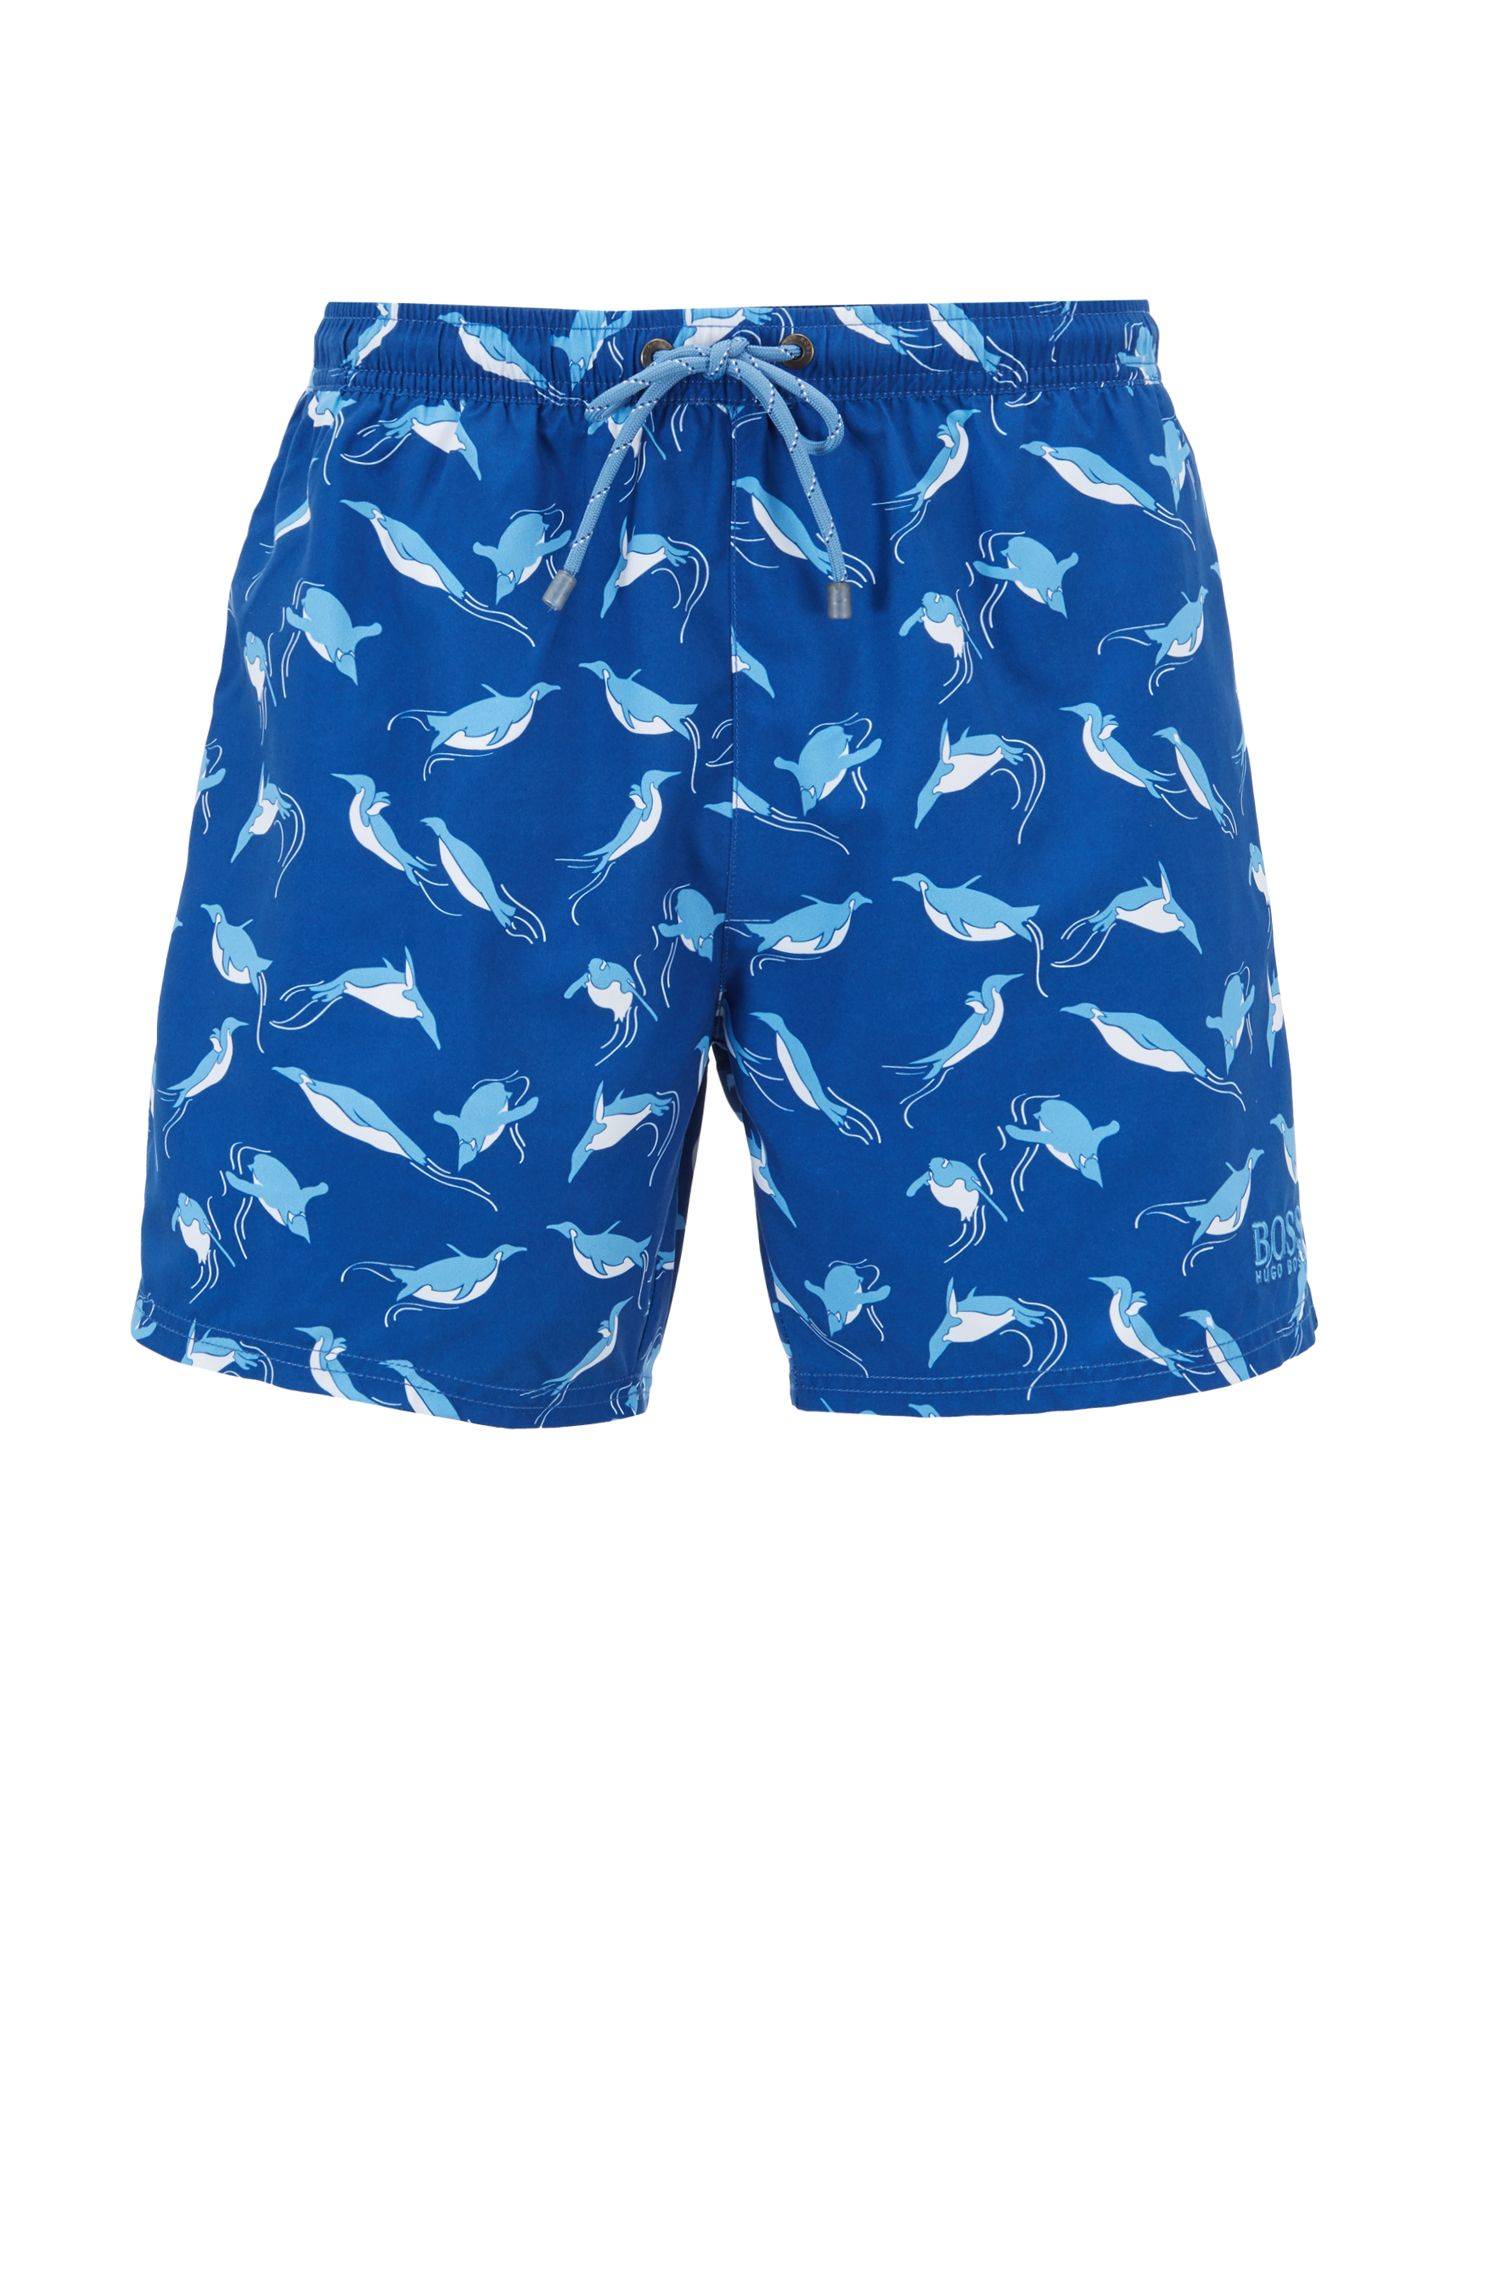 Shorter-length swim shorts with sea-life print, Open Blue